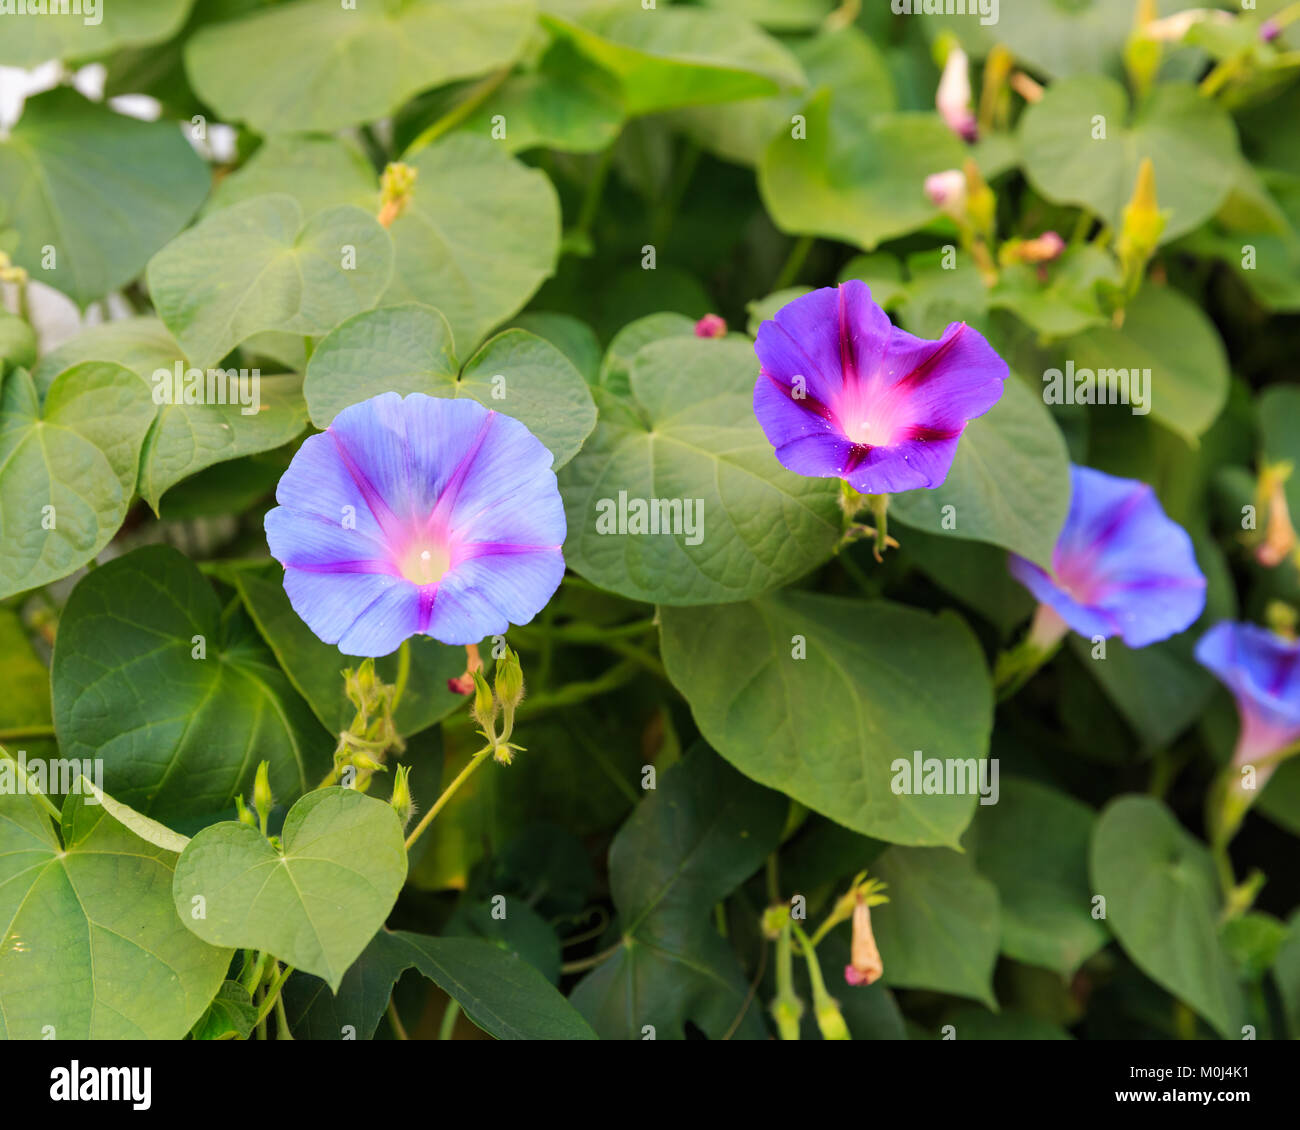 Morning glory purple and blue flowers in bloom, Ipomoea purpurea, Convolvulaceae family - Stock Image